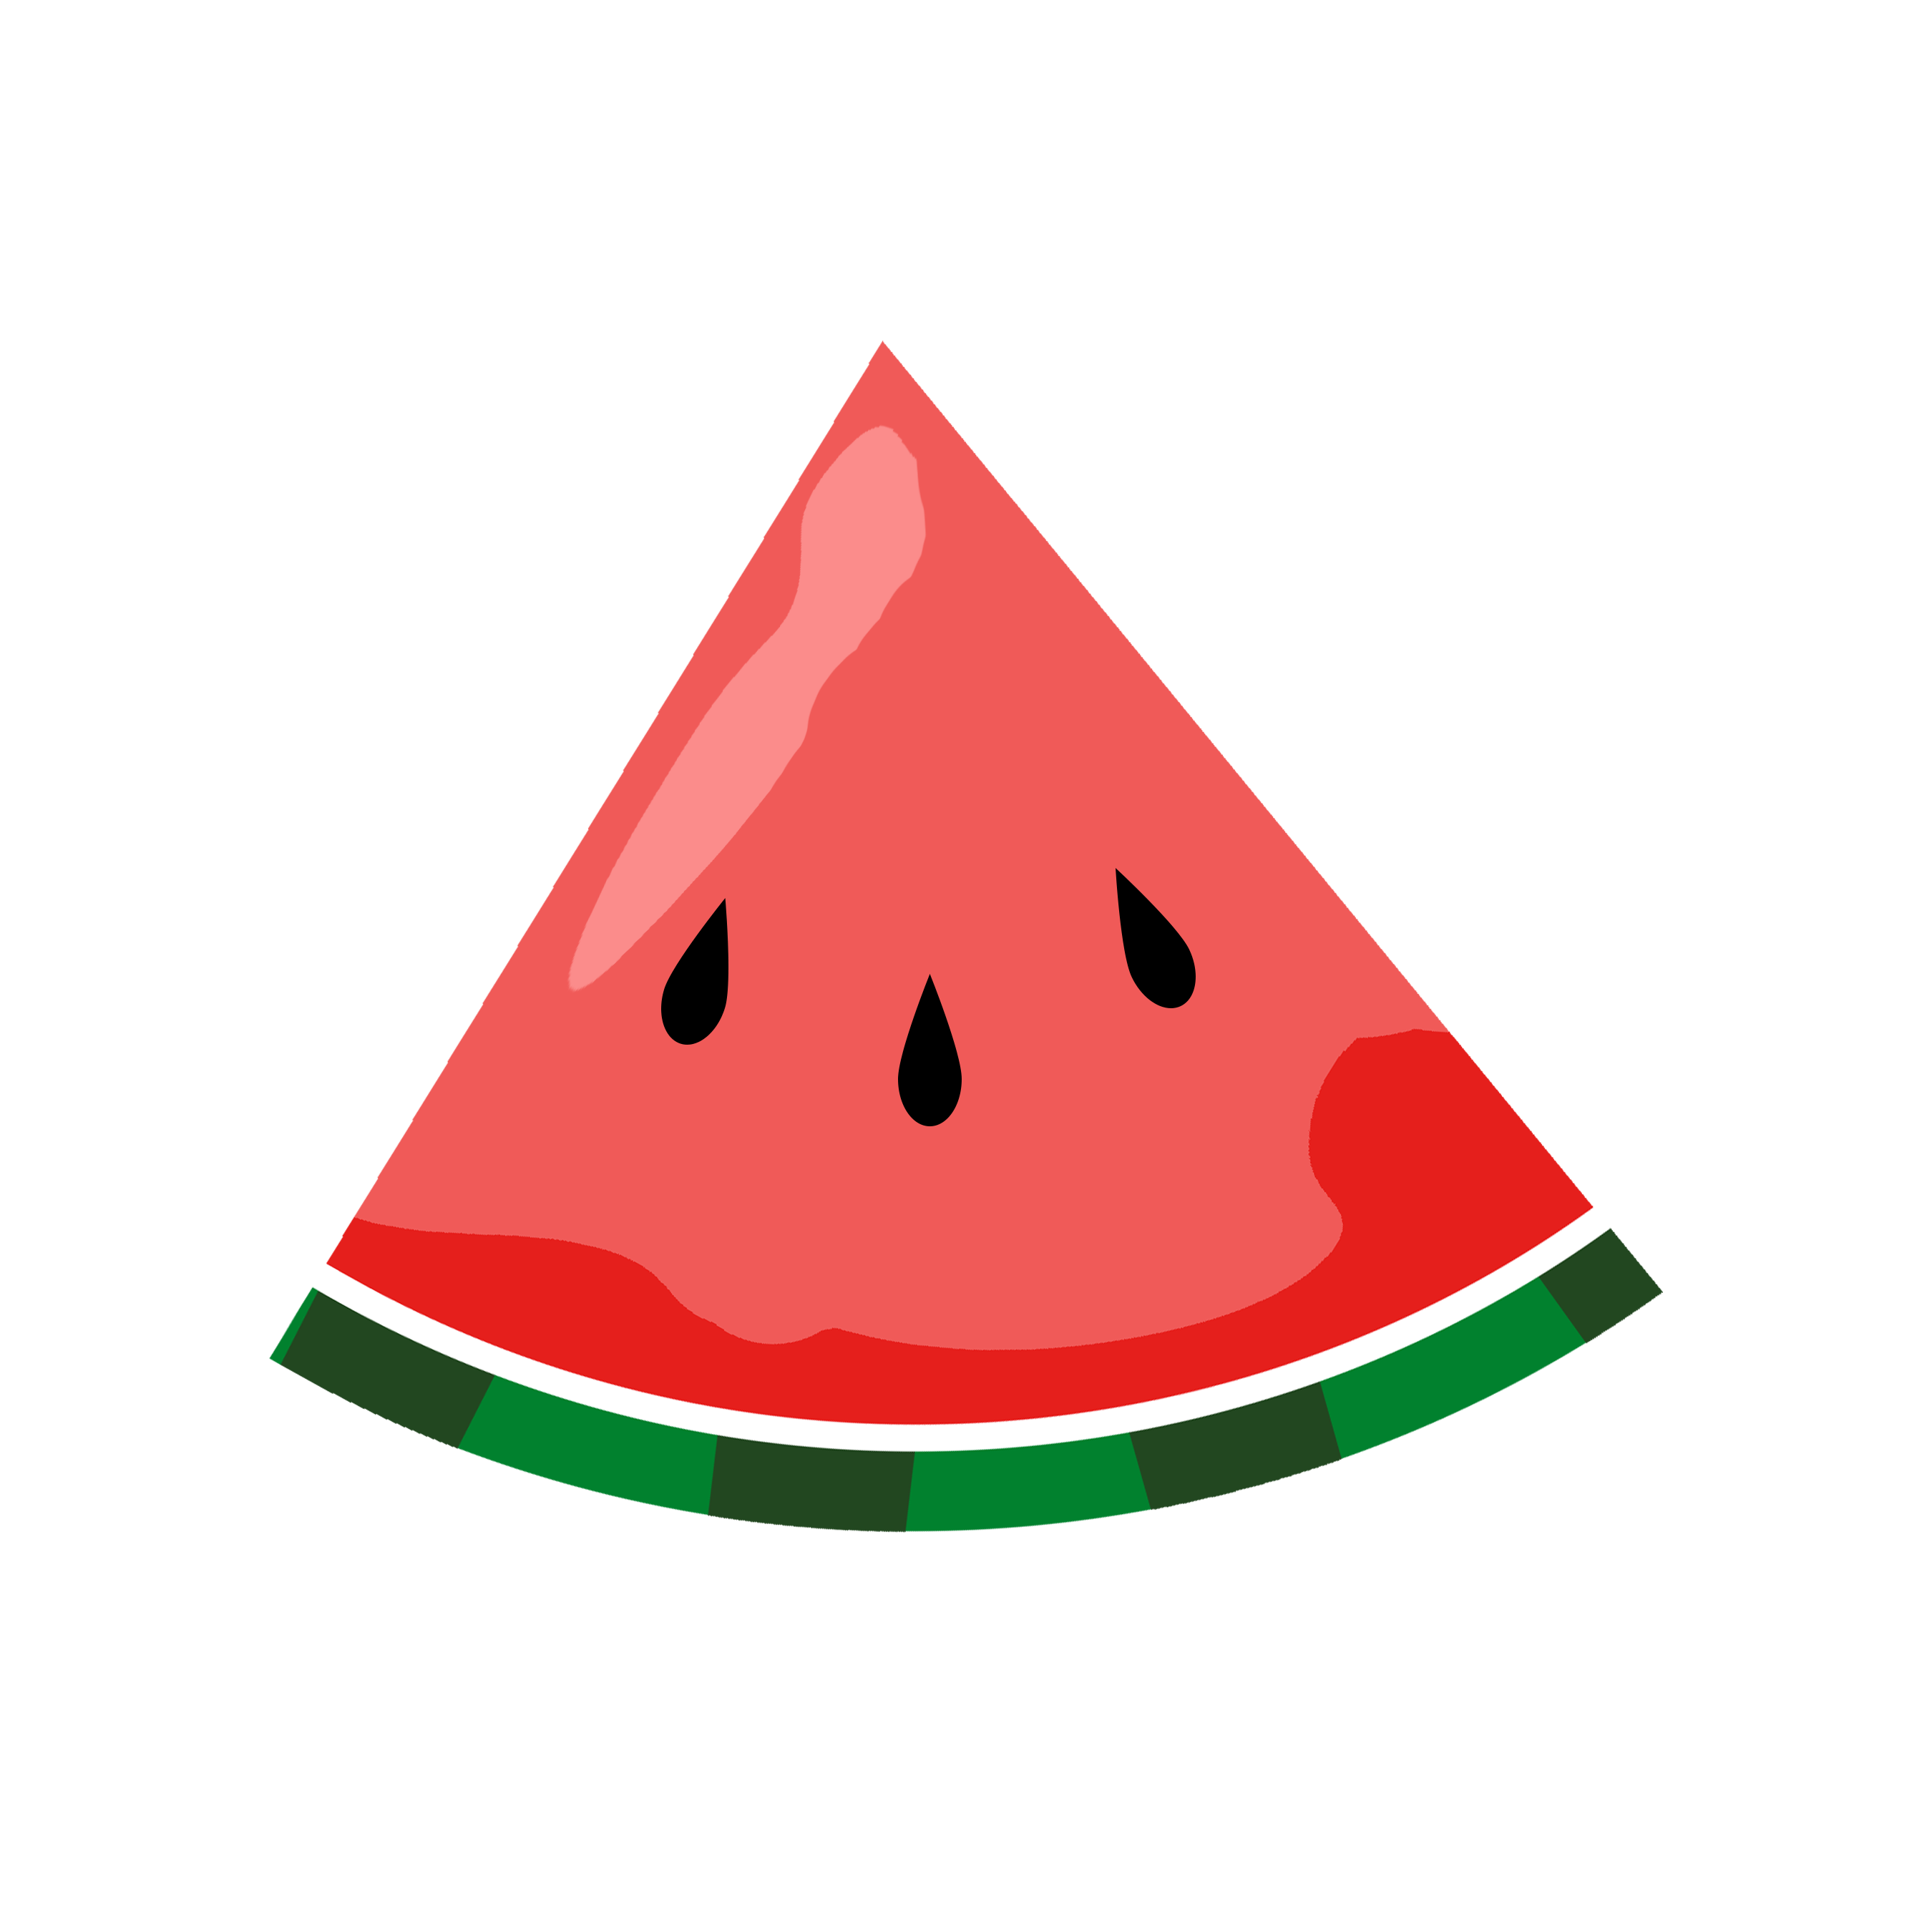 Melon clipart watermelon slice Watermelon Free Slice Watermelon collection